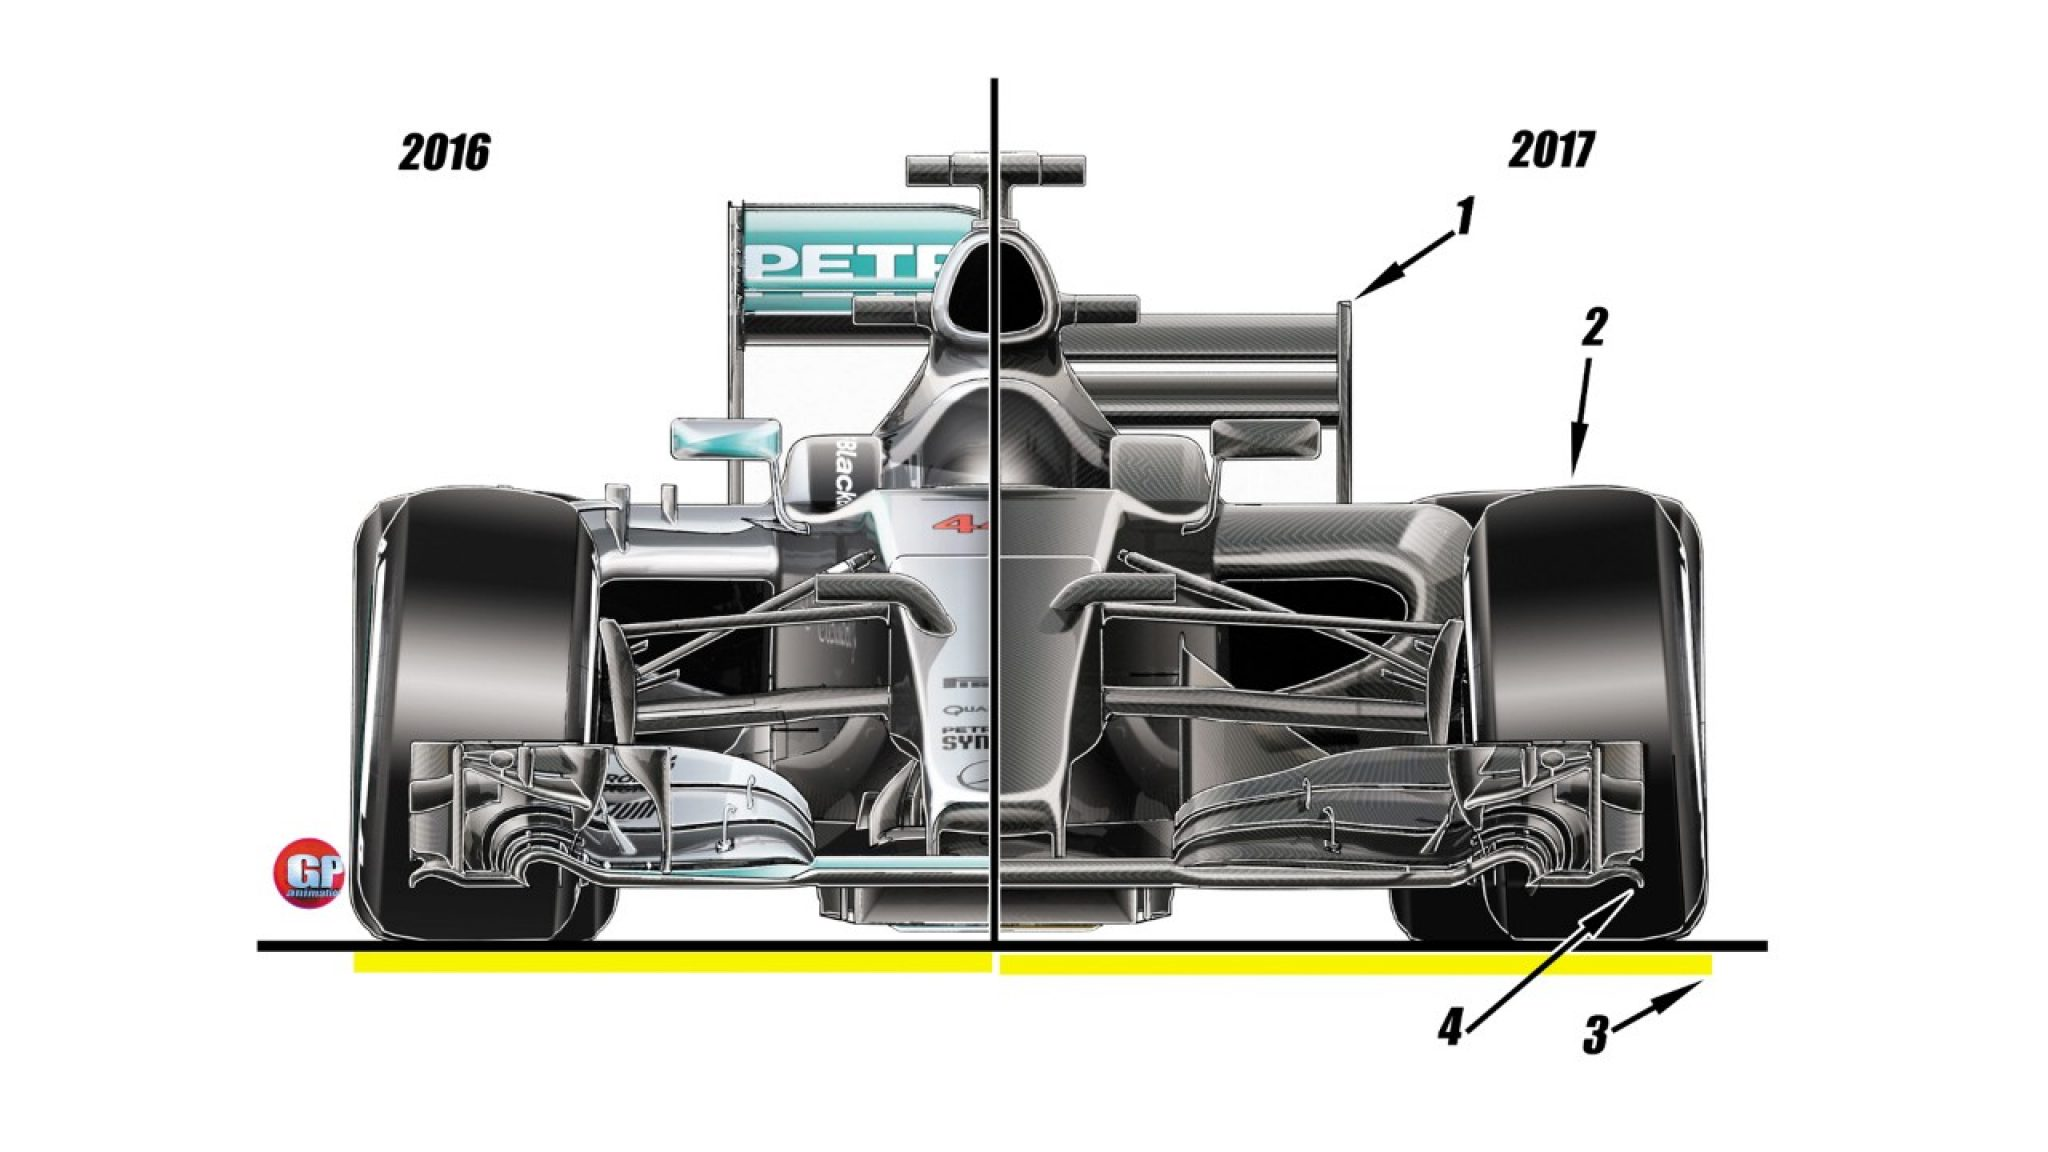 Chassis design of f1 car - Image